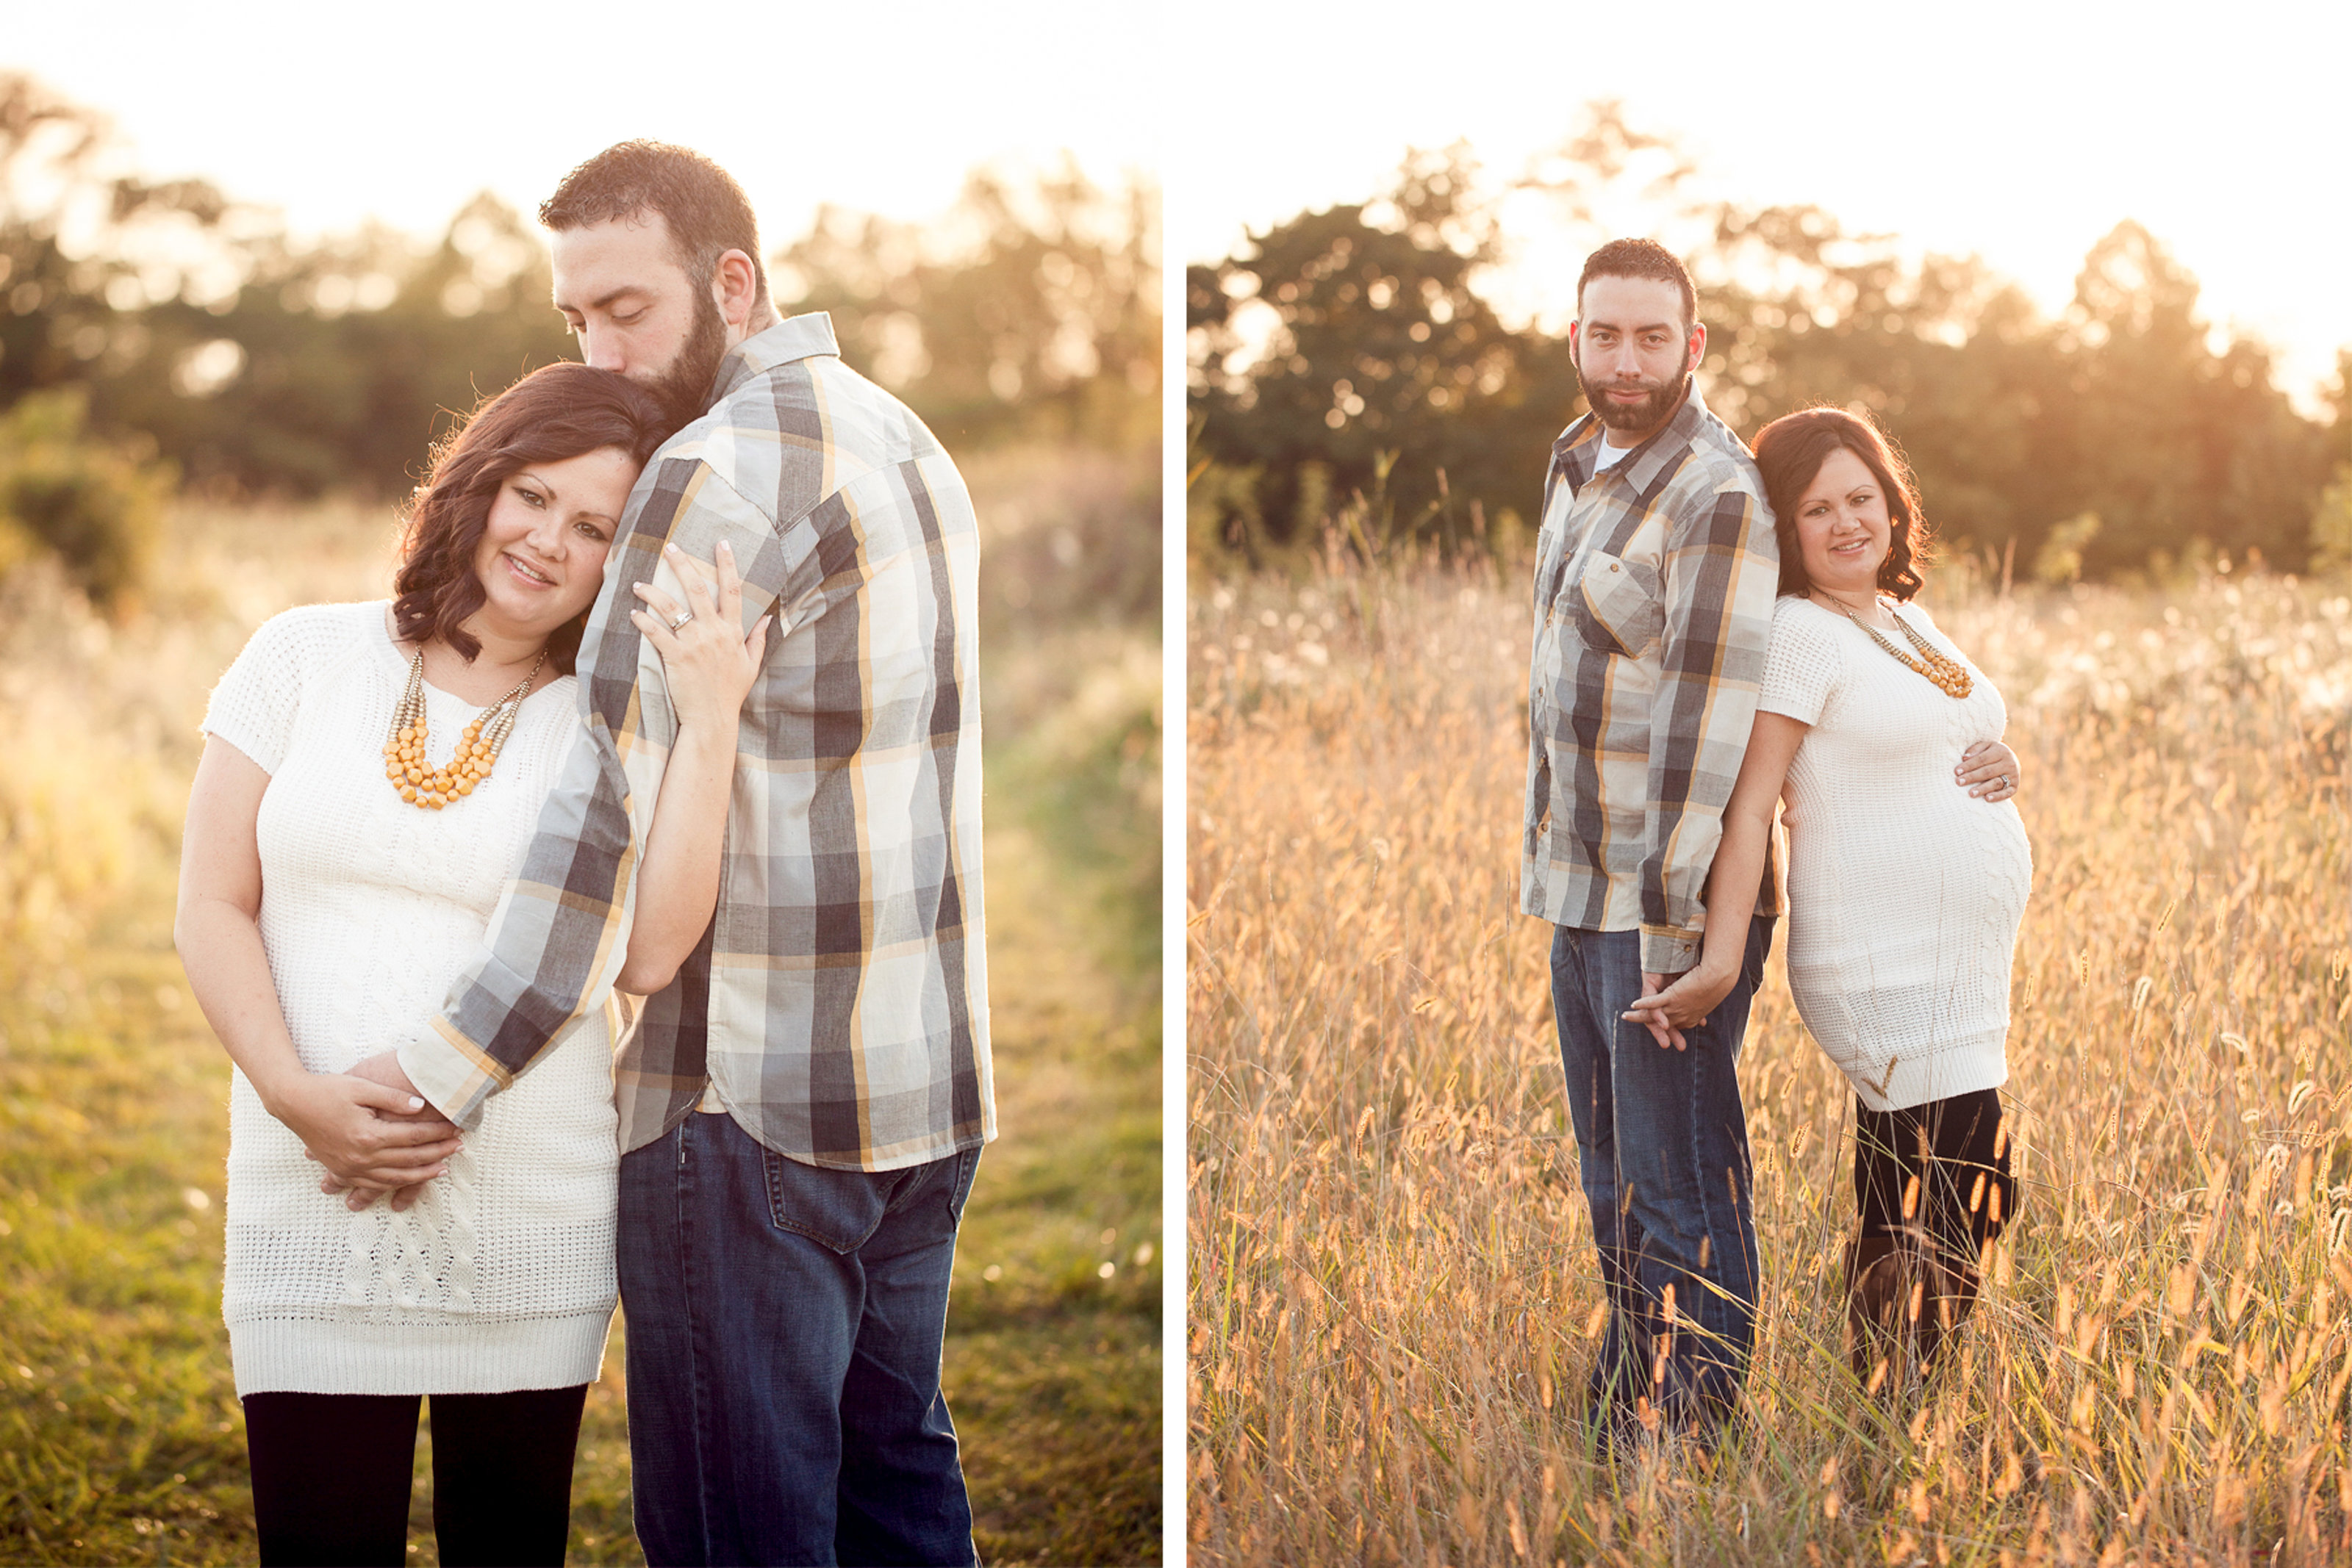 Lancaster couple pose in wheat field photo at sunset